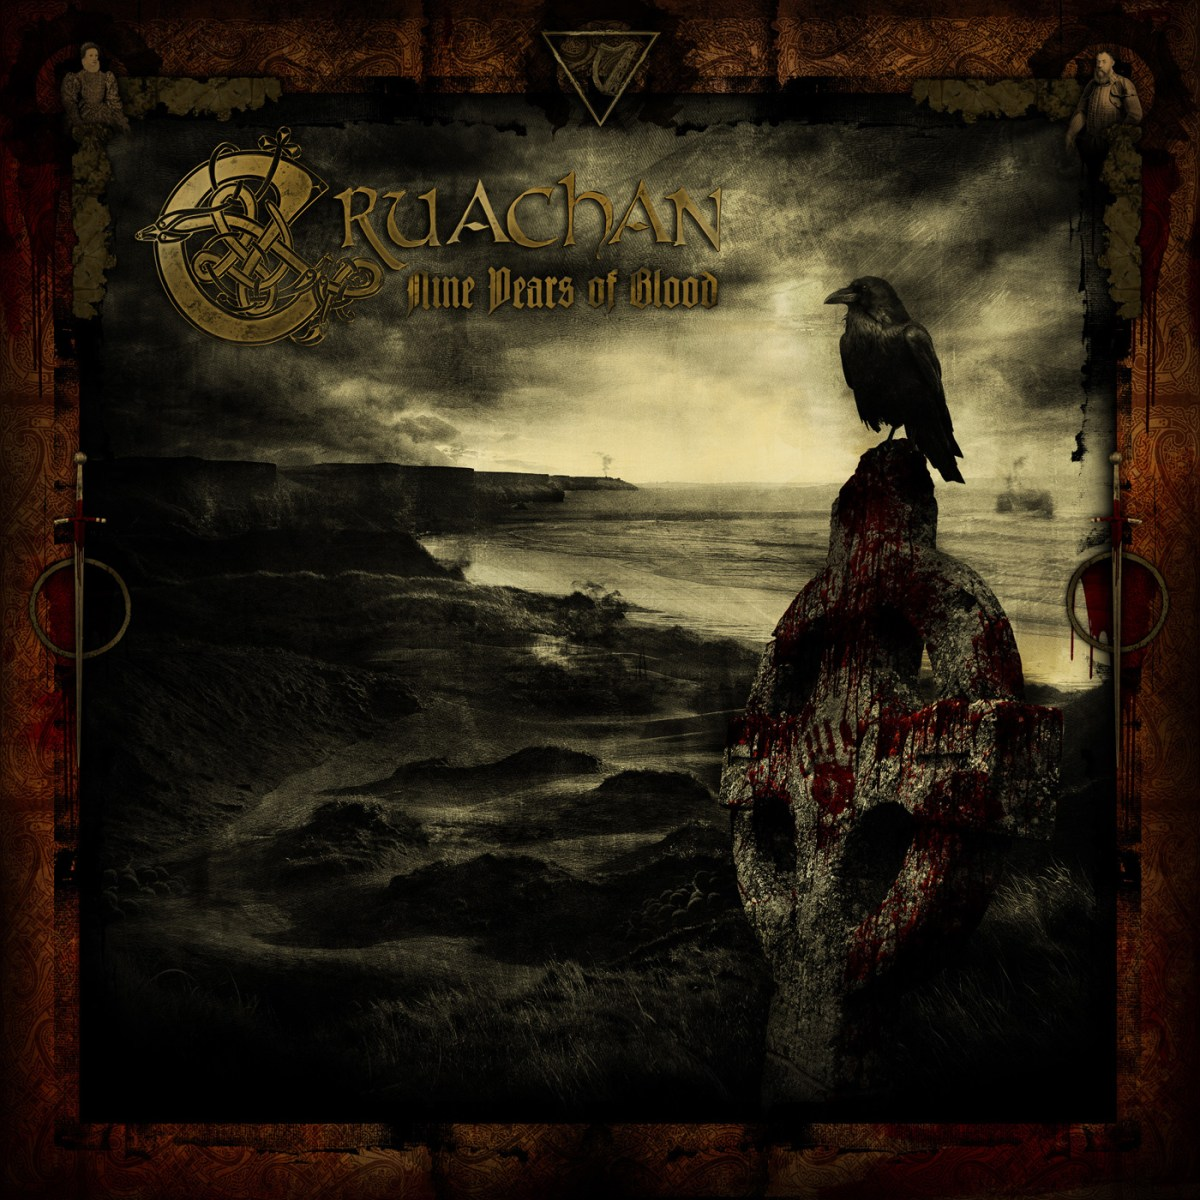 Cruachan – Nine Years Of Blood